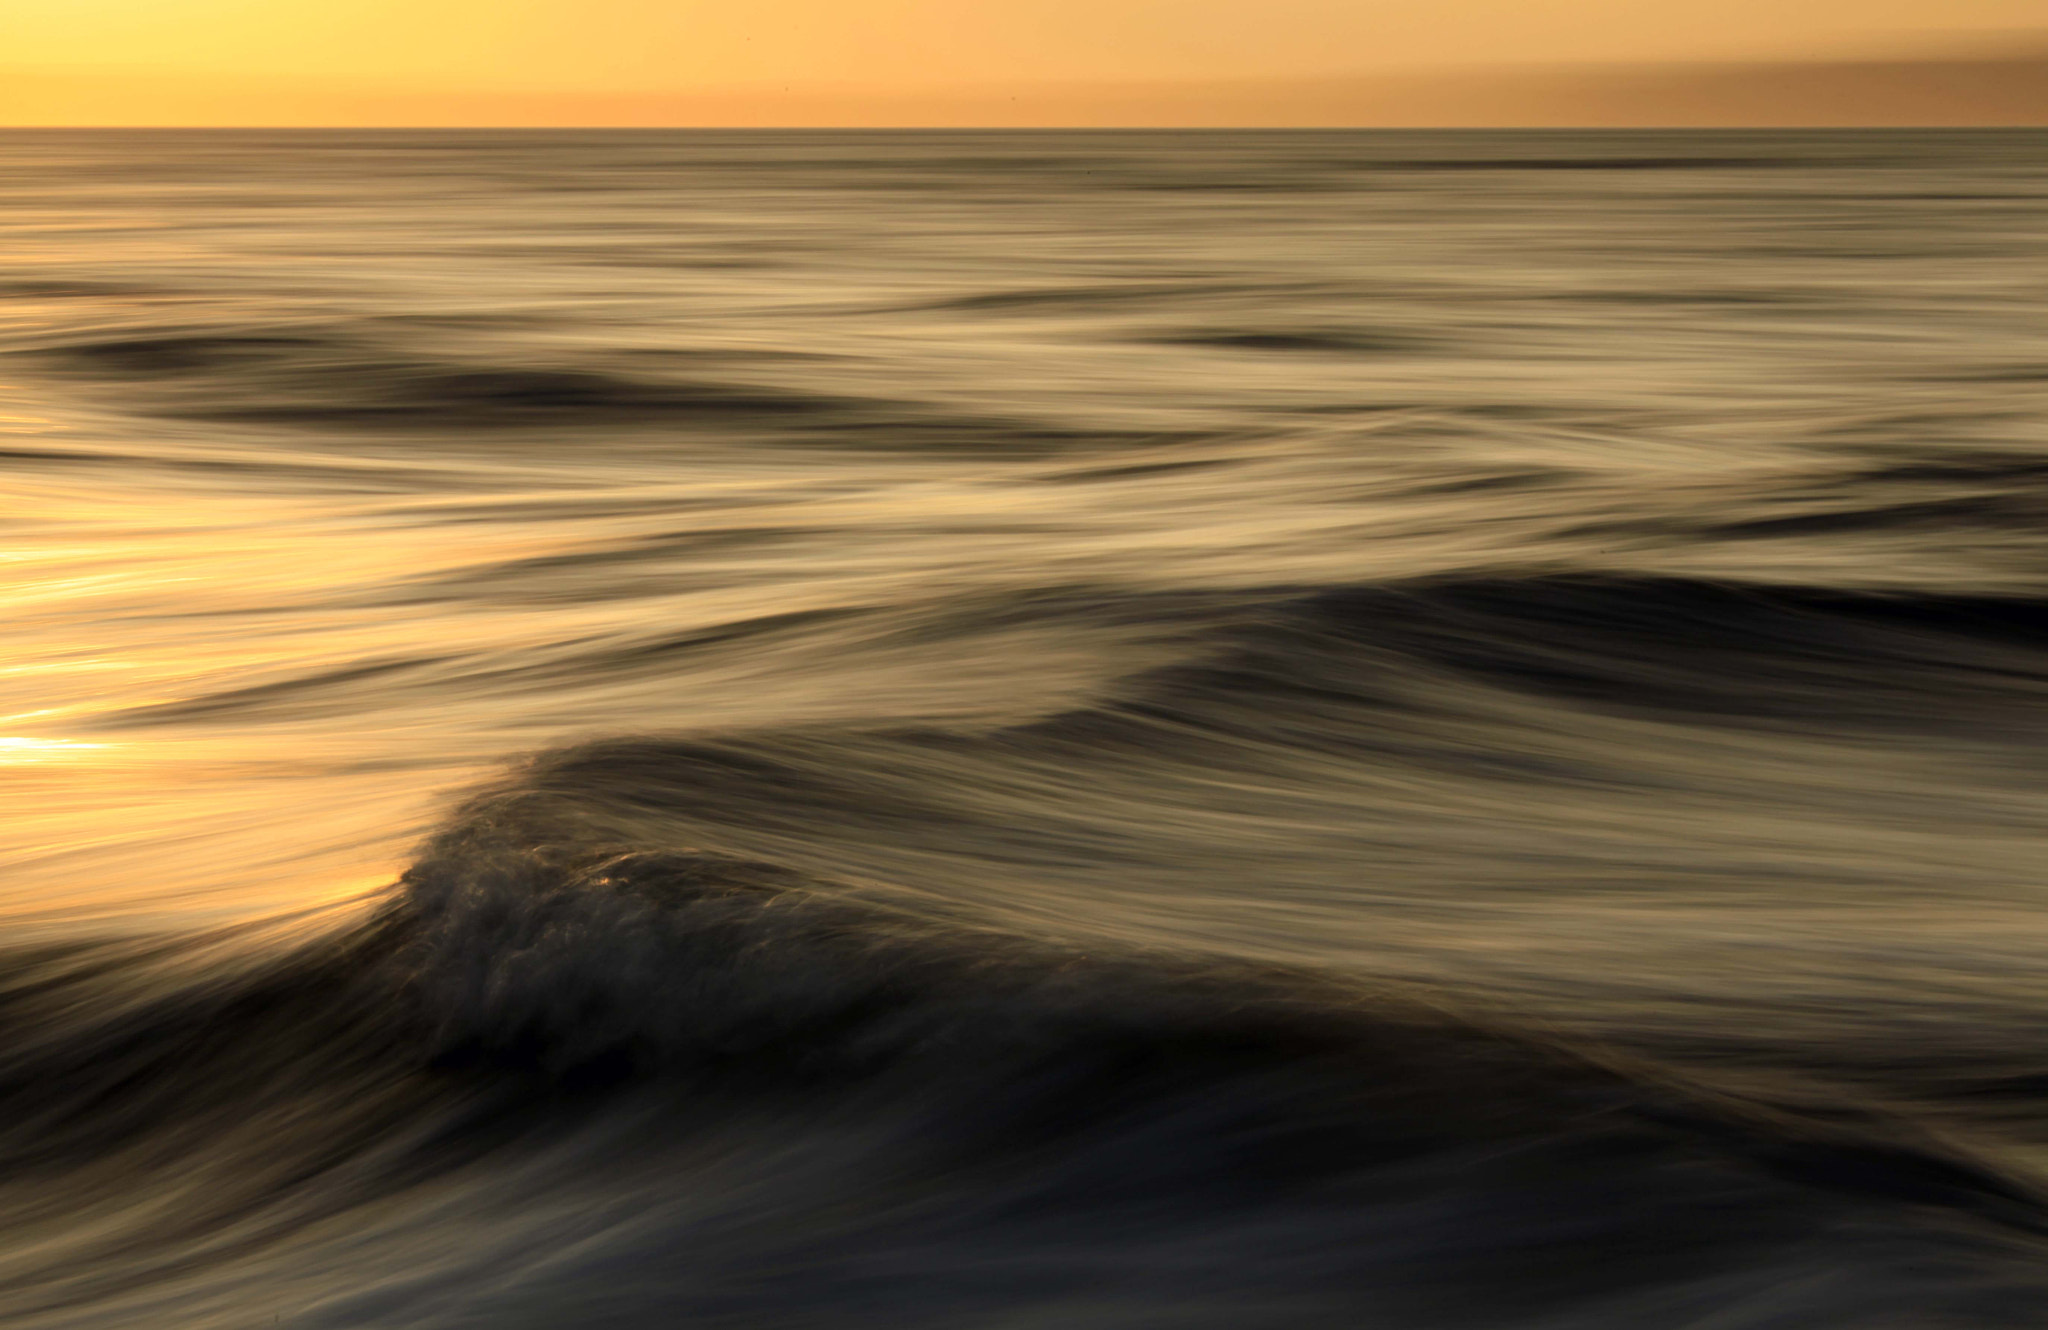 Photograph Solitude by Michael Rollins on 500px